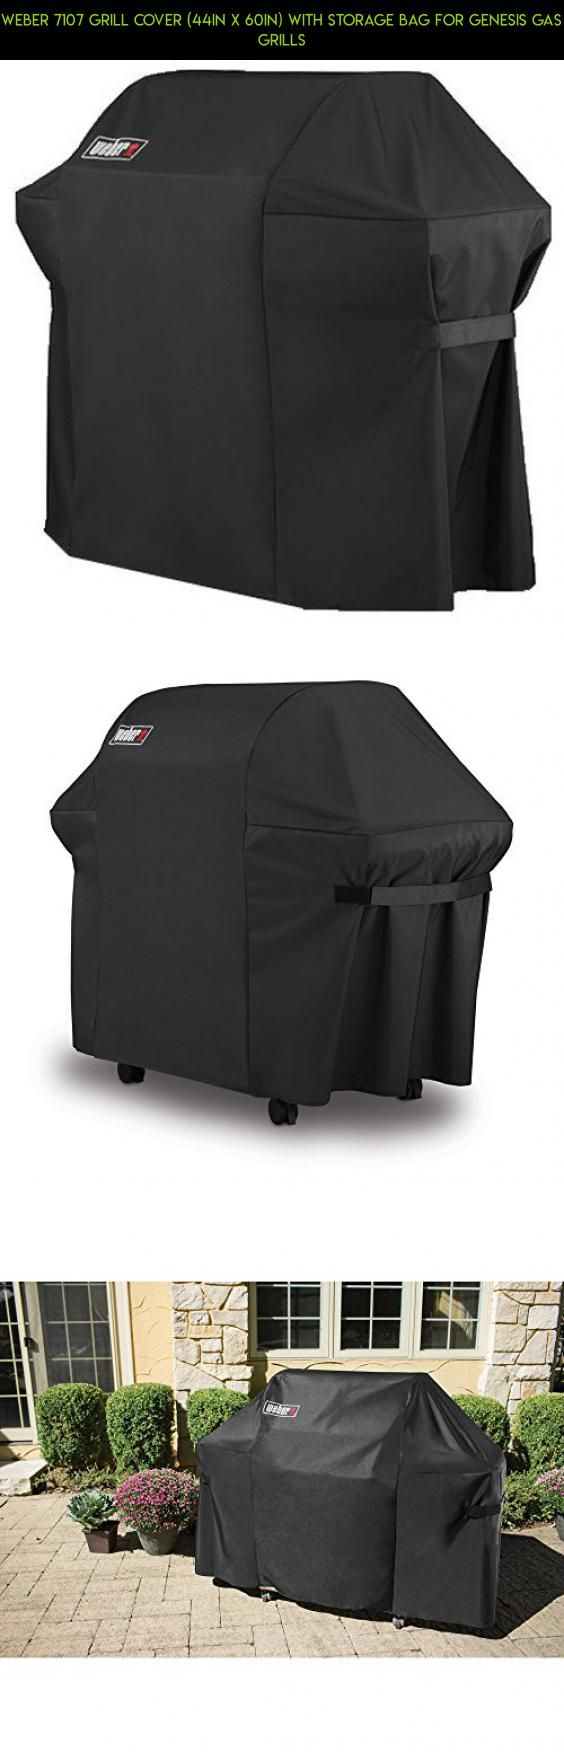 Weber 7107 Grill Cover (44in X 60in) with Storage Bag for Genesis Gas Grills #shopping #tech #grills #parts #plans #products #racing #technology #drone #under #camera #gadgets #kit #fpv #100